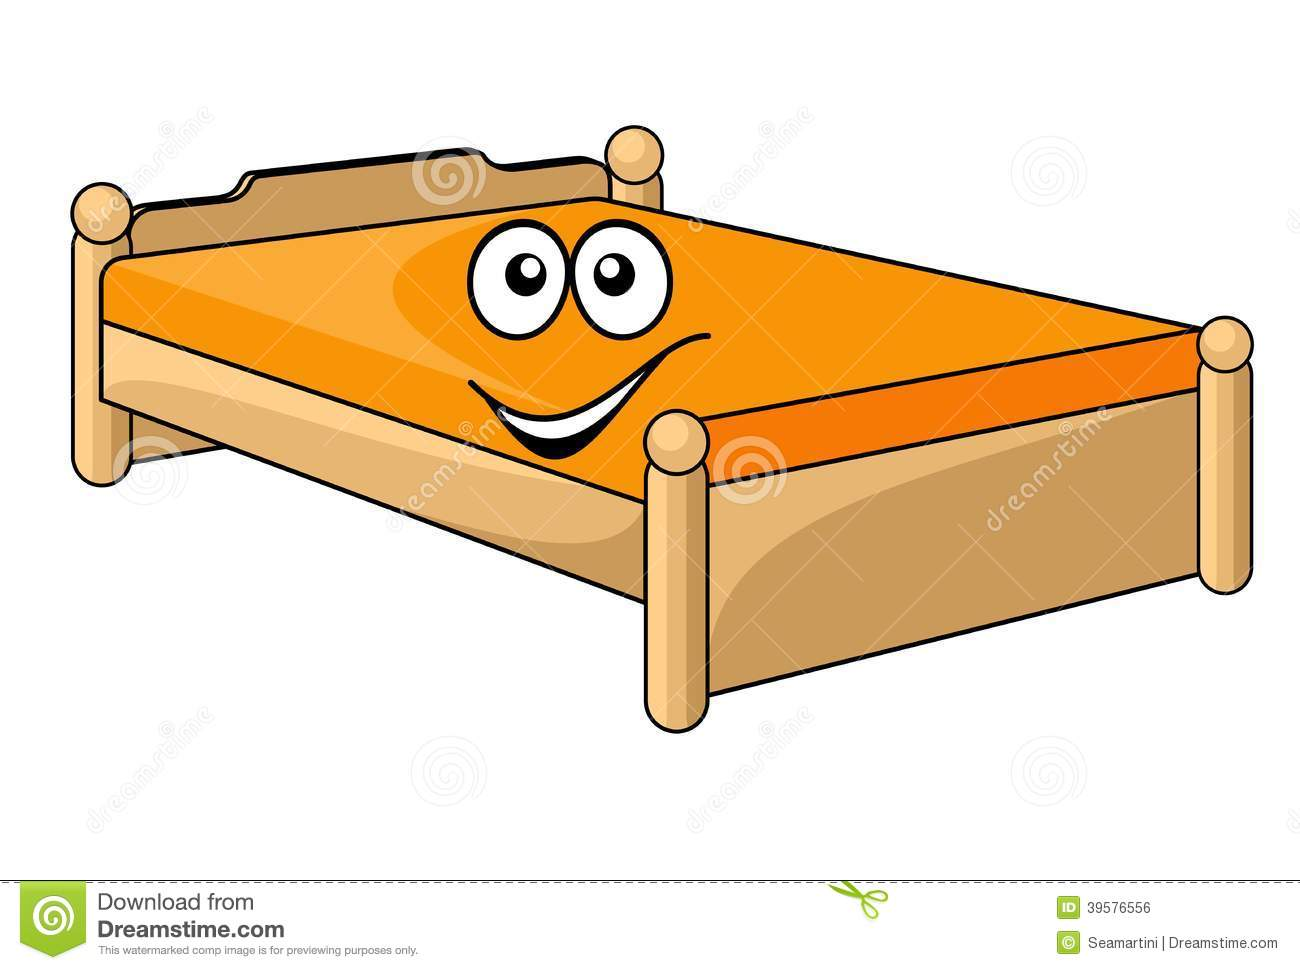 Bettdecken Clip Comfortable Cartoon Bed Stock Vector Illustration Of Icon